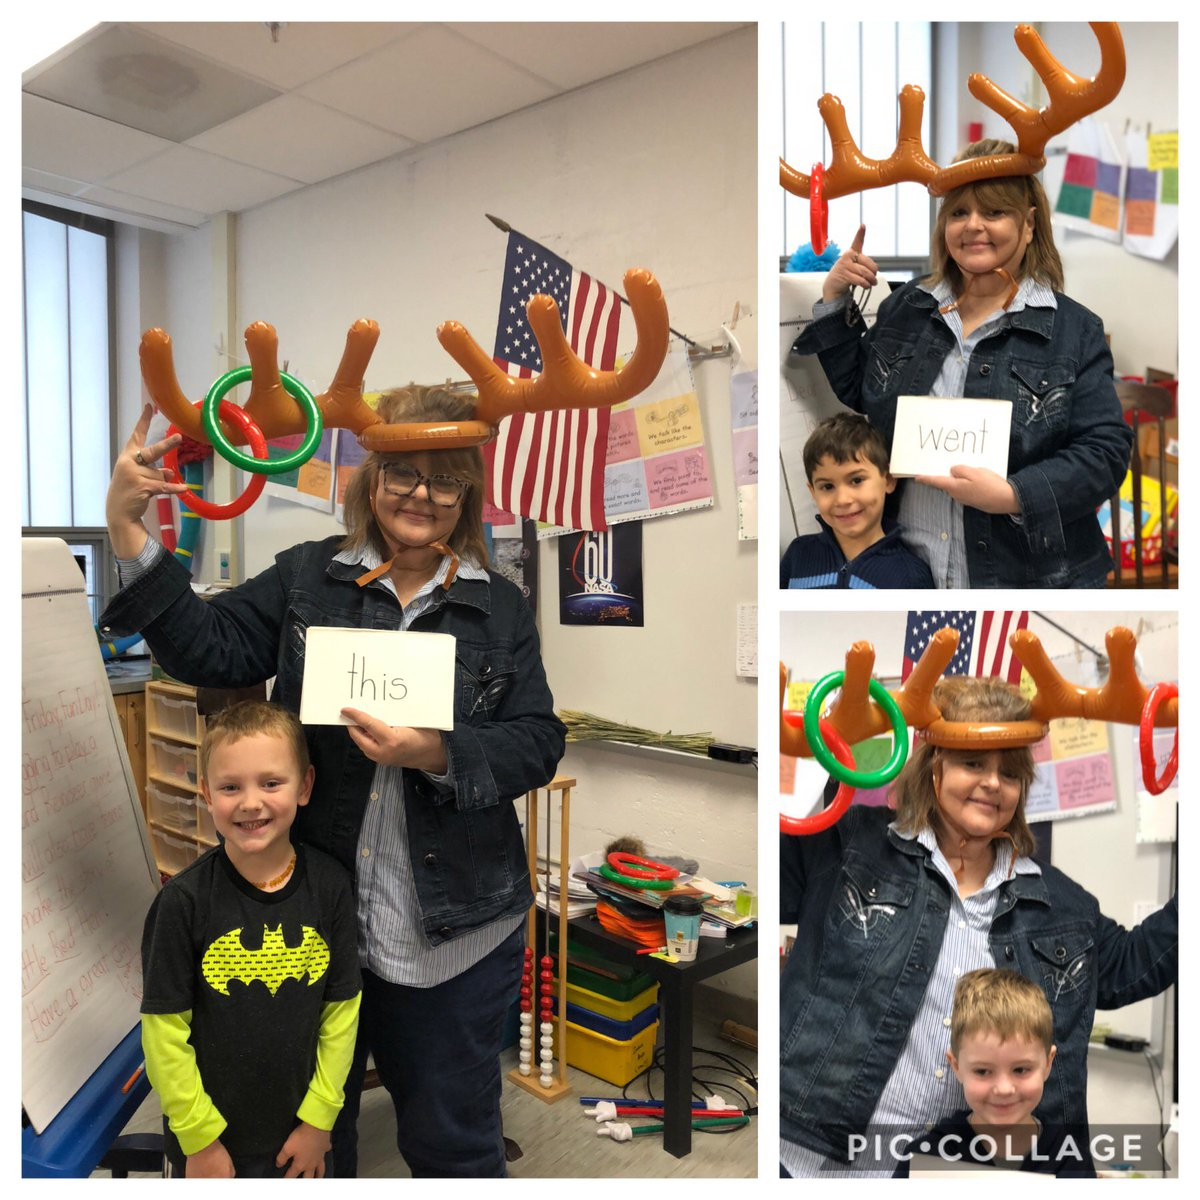 It's time for Reindeer Games! We commence with Reindeer snap word ring toss! These super readers managed to get the ring on the antlers! Way to go! <a target='_blank' href='https://t.co/cu1mf5kdyo'>https://t.co/cu1mf5kdyo</a>